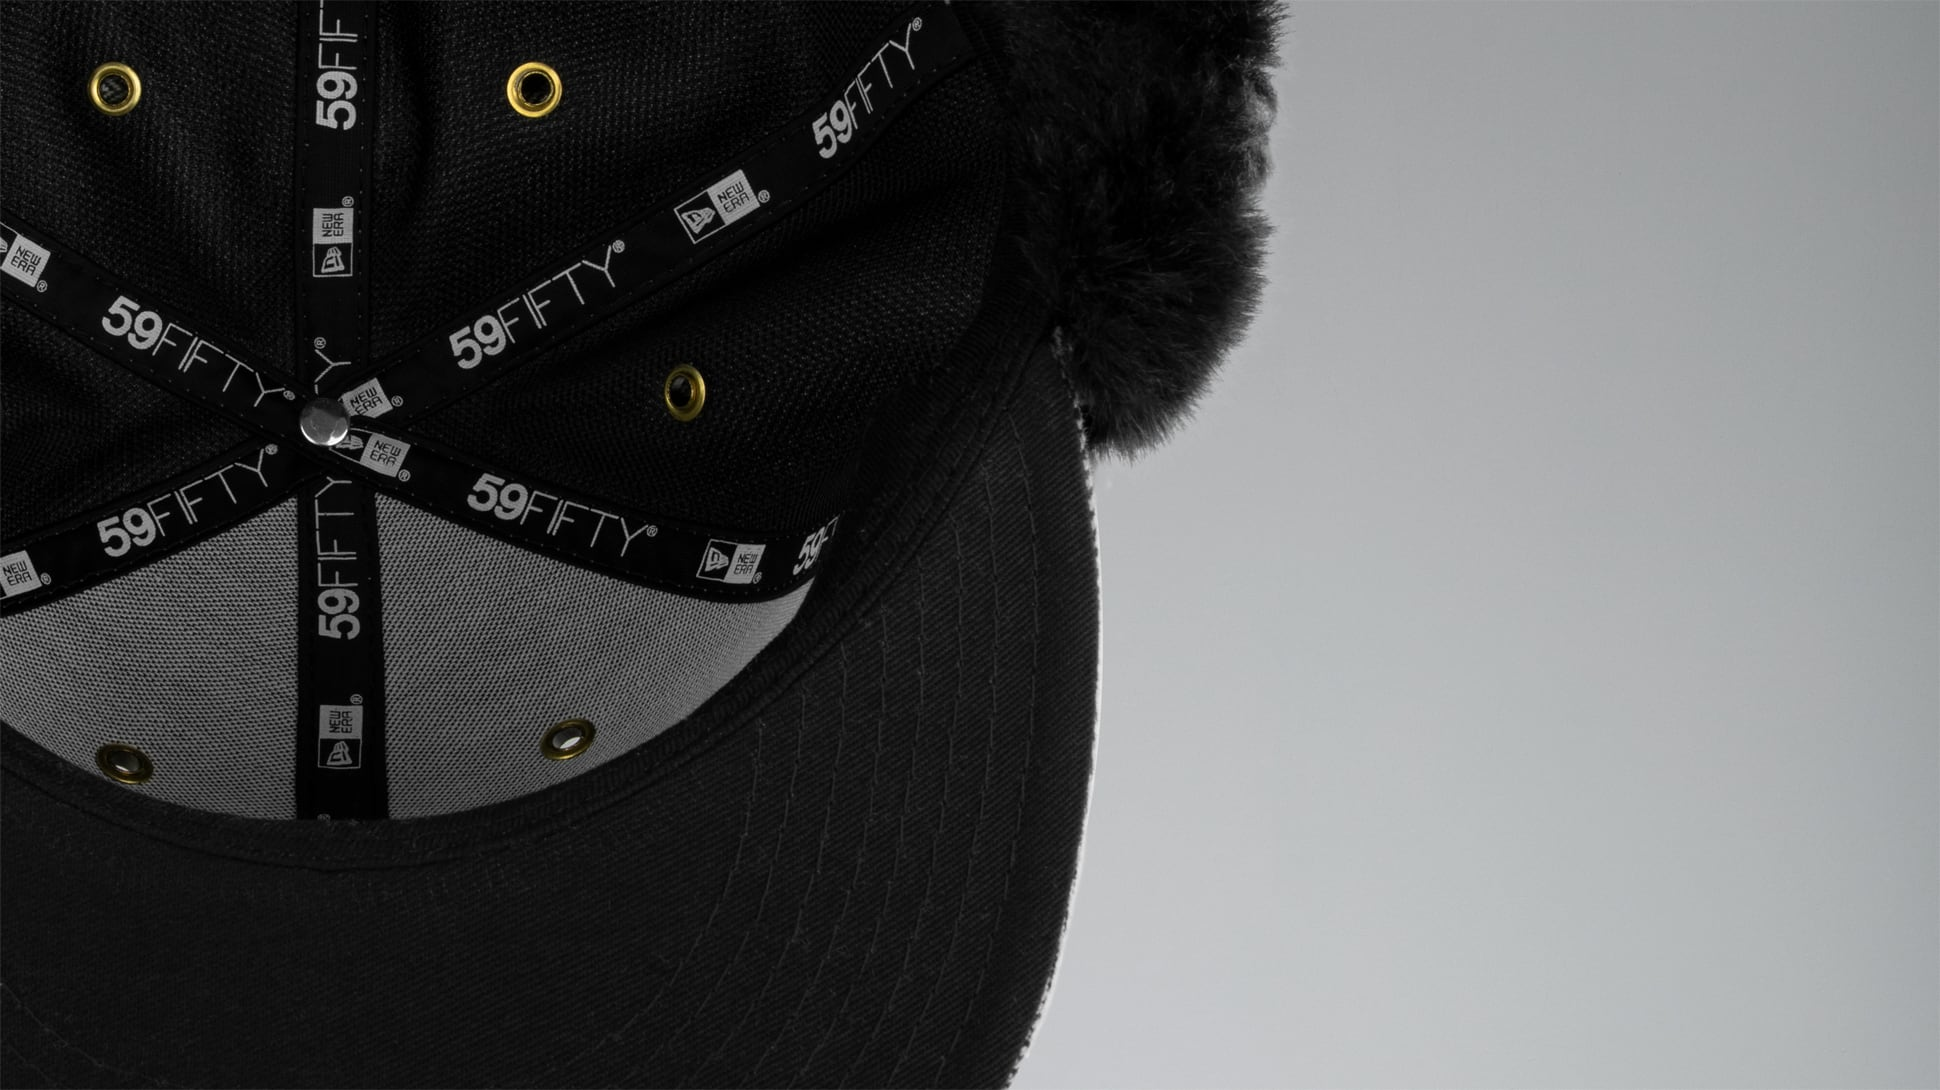 Dog Ear 59FIFTY Fitted Cap Image 10